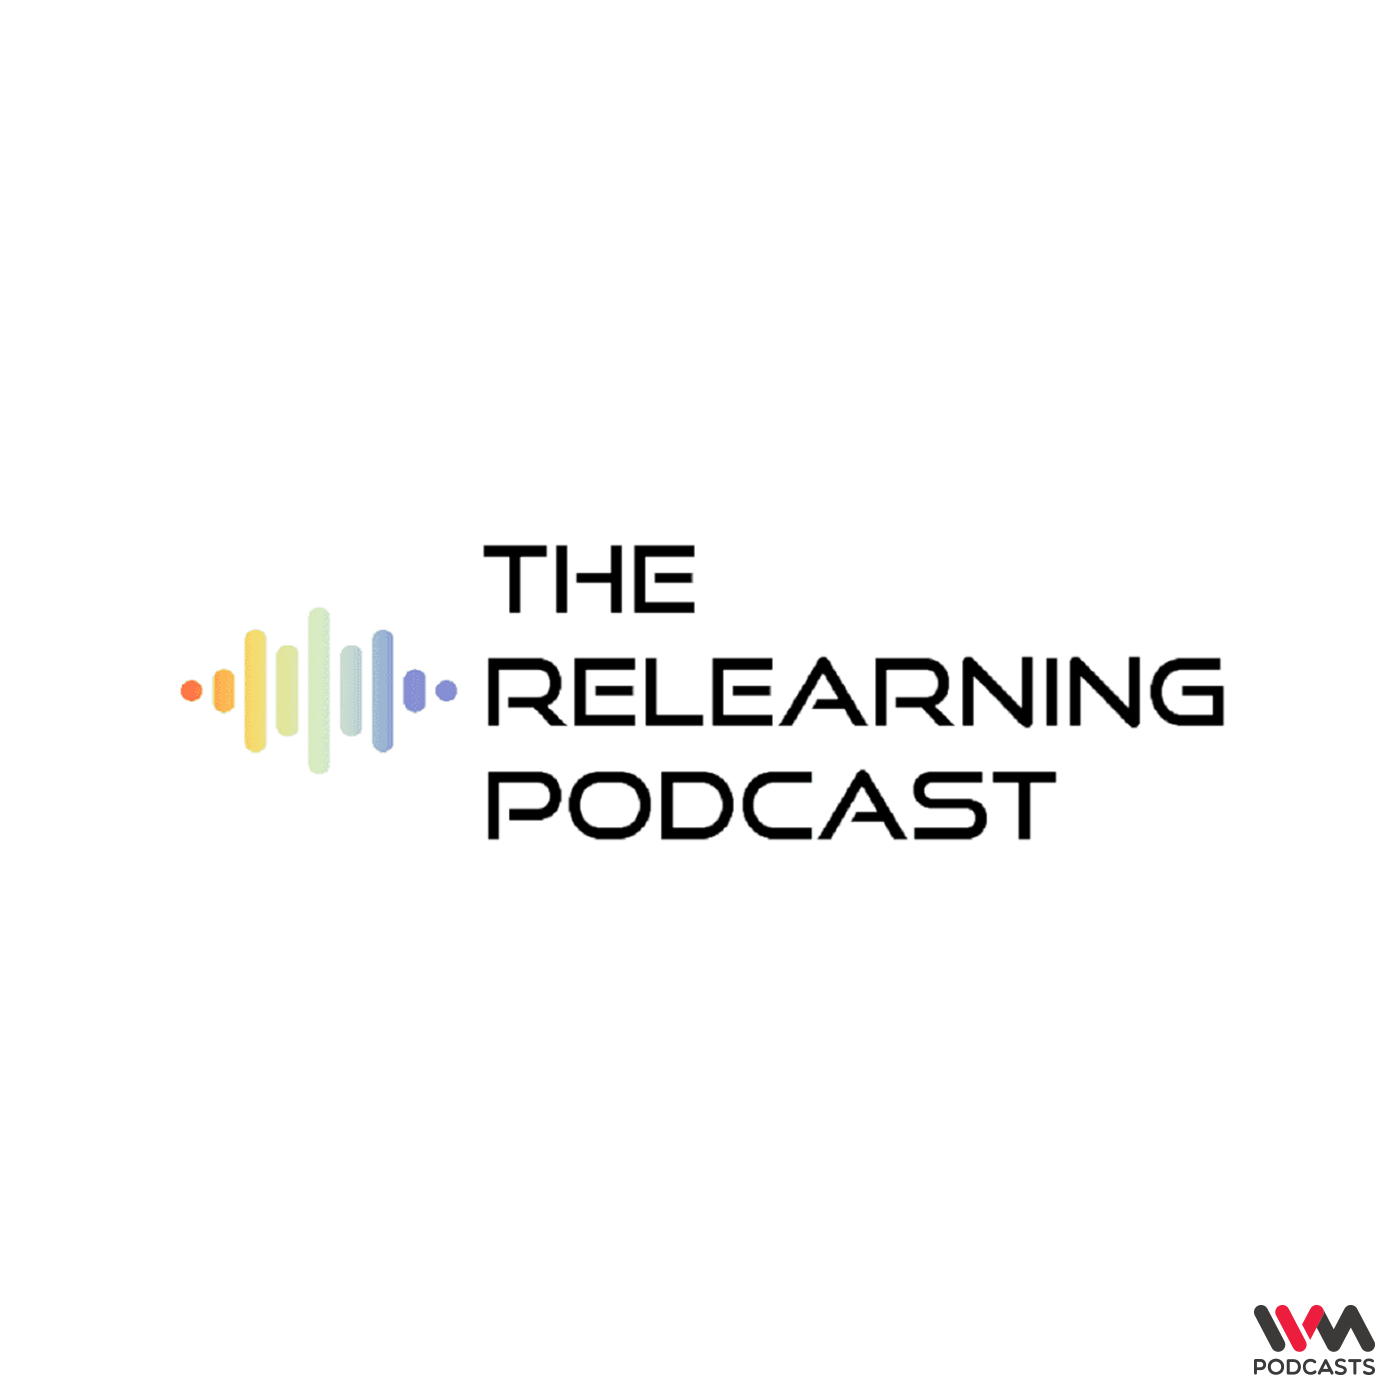 The Relearning Podcast